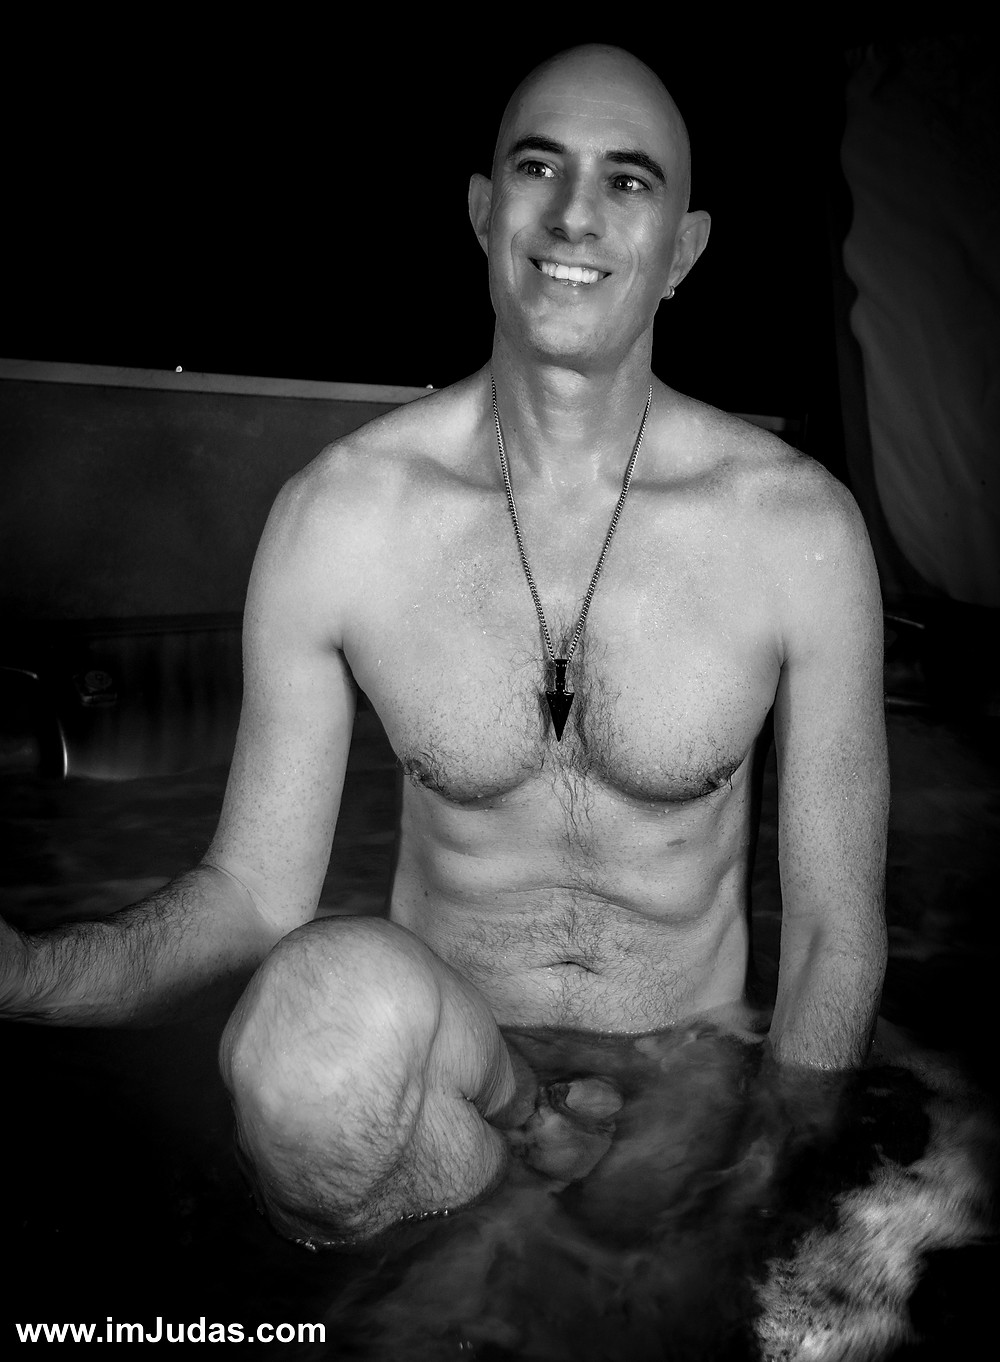 I was so happy to be naked and wet with him again.